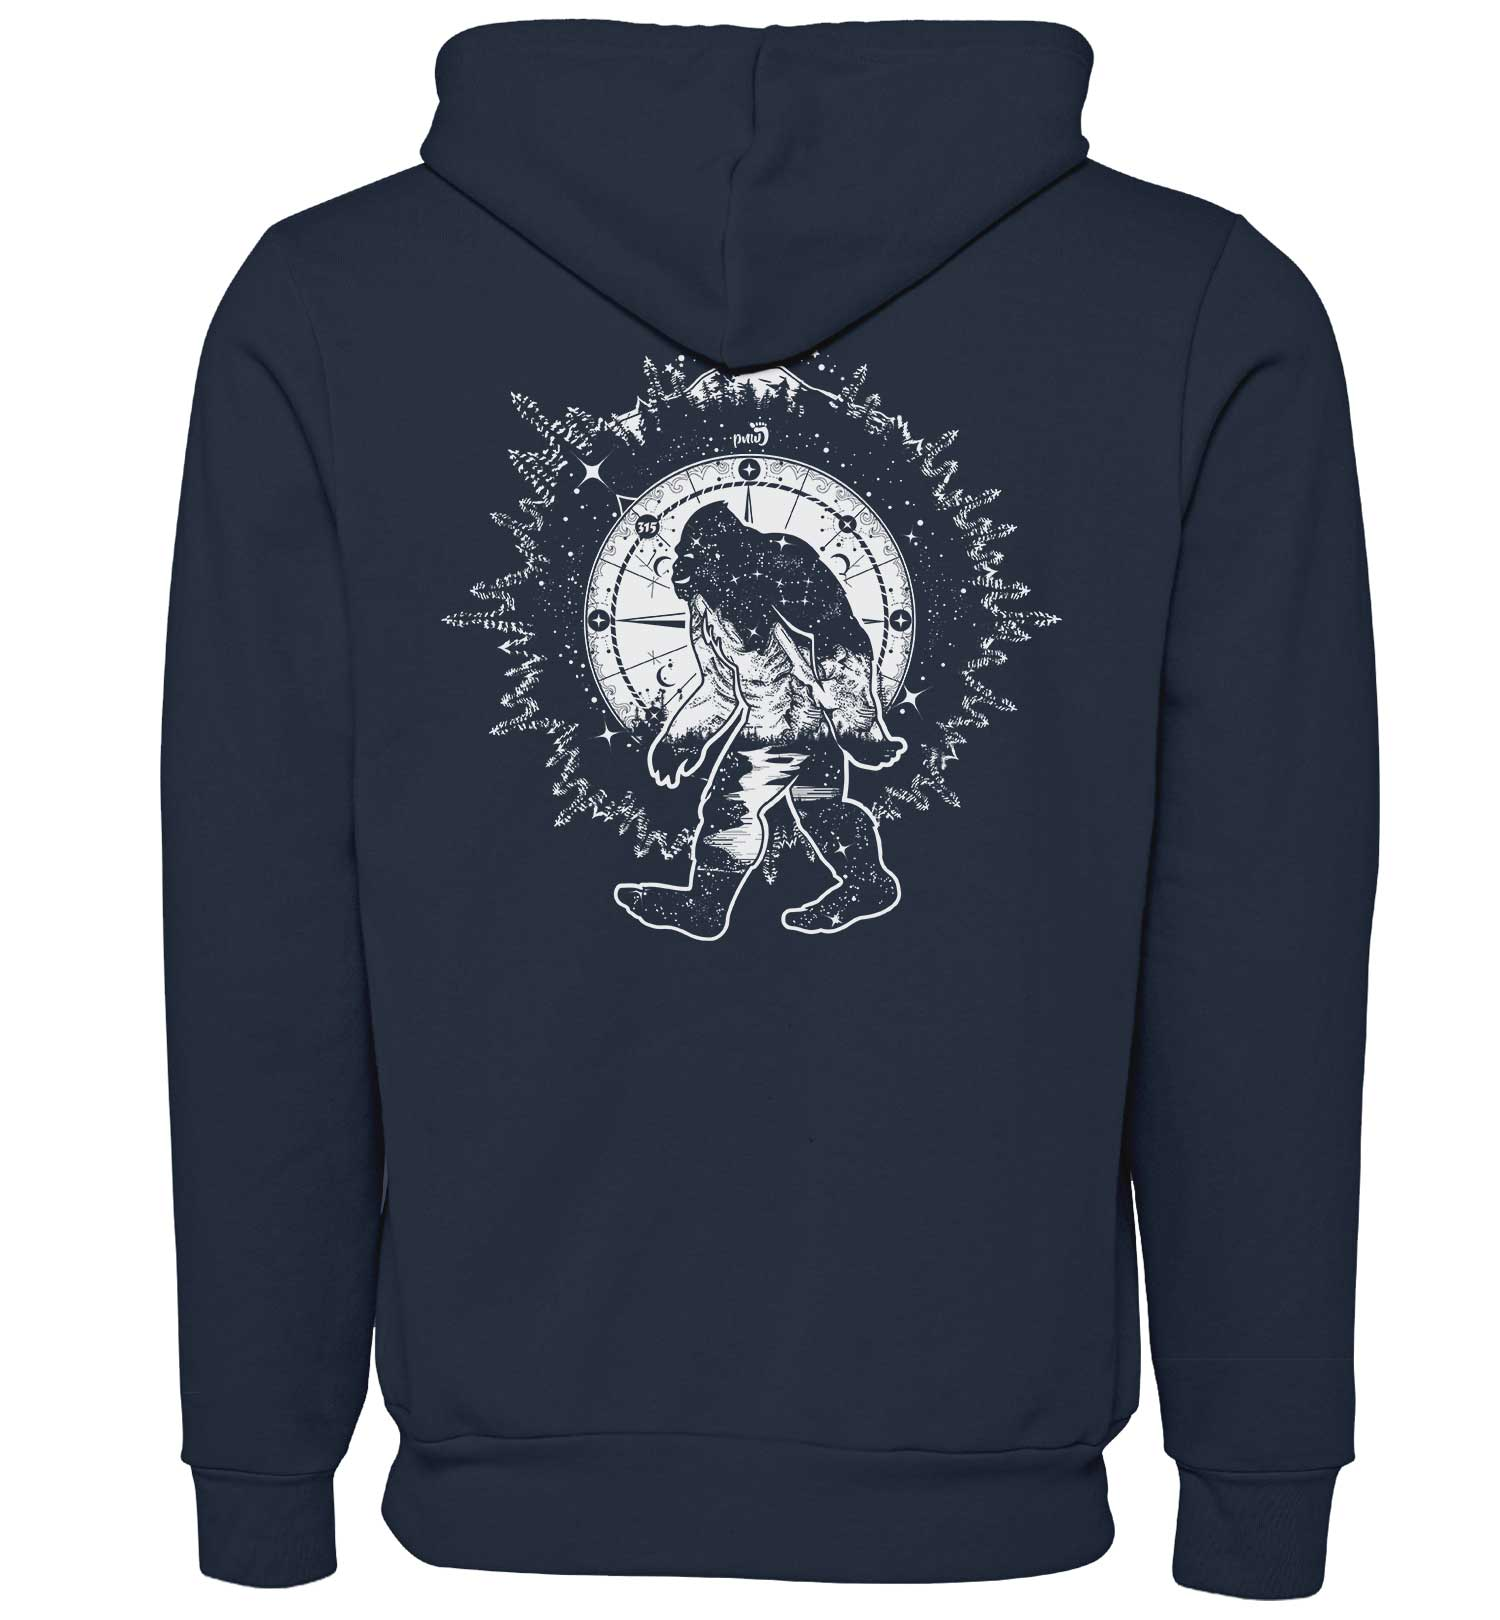 Bigfoot Nights - Sweatshirt - Zip Hoodie - Navy - Combined - PNW Journey